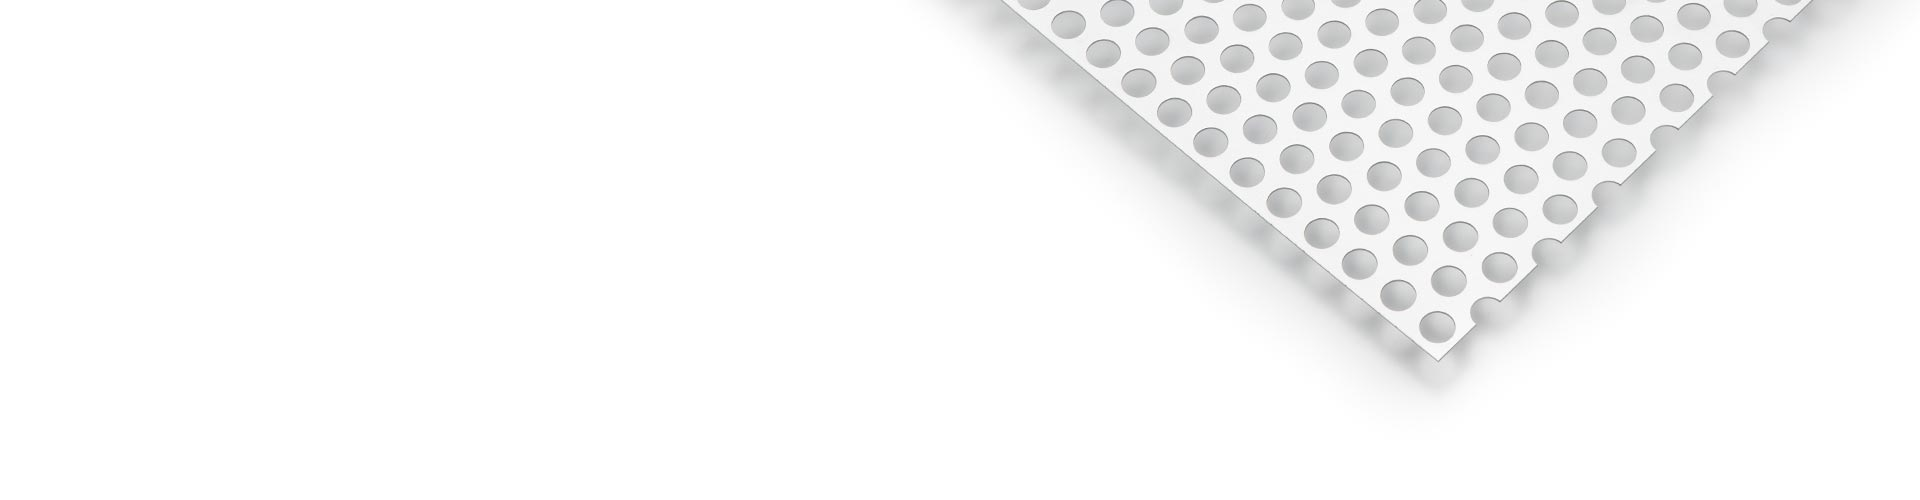 Perforated sheets with round holes - perfolinea.eu